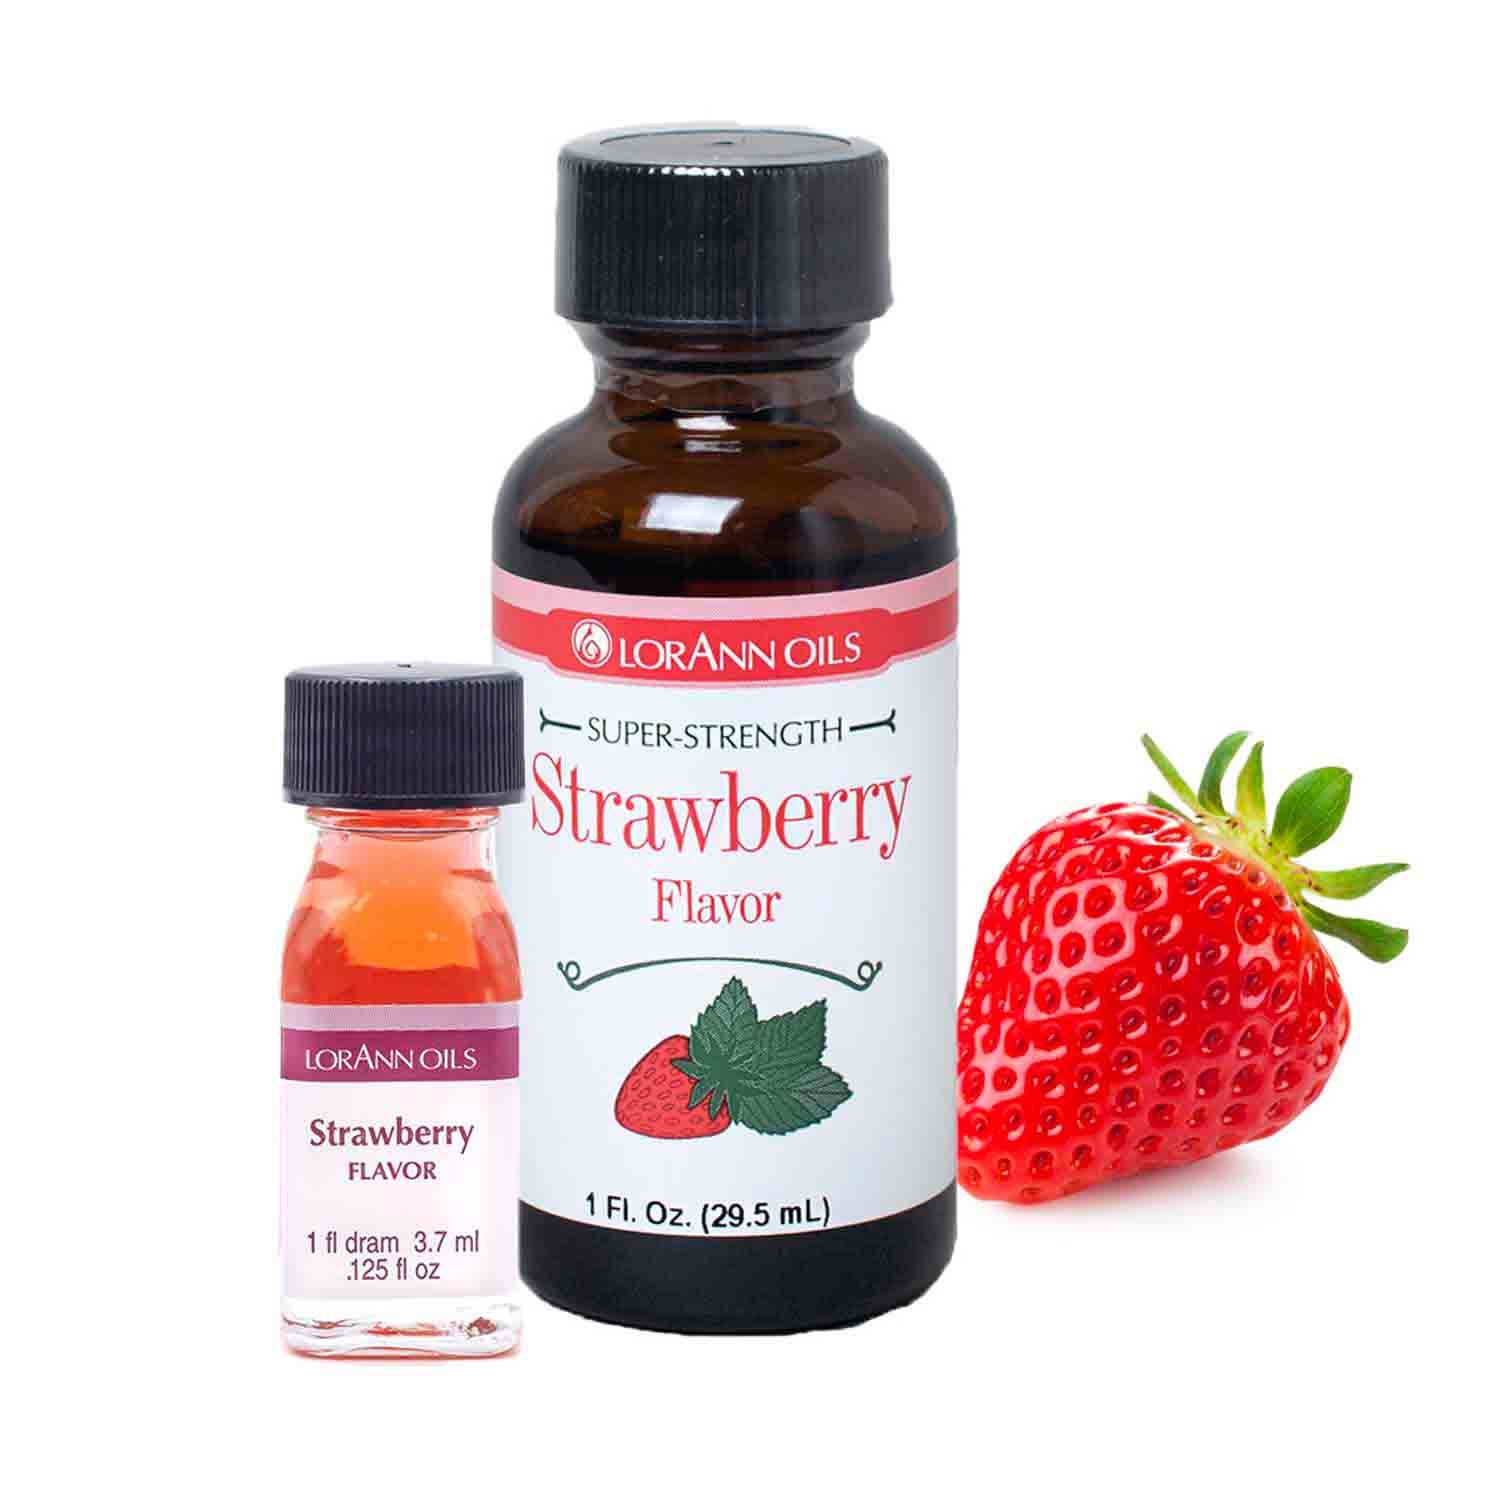 Strawberry Super-Strength Flavor